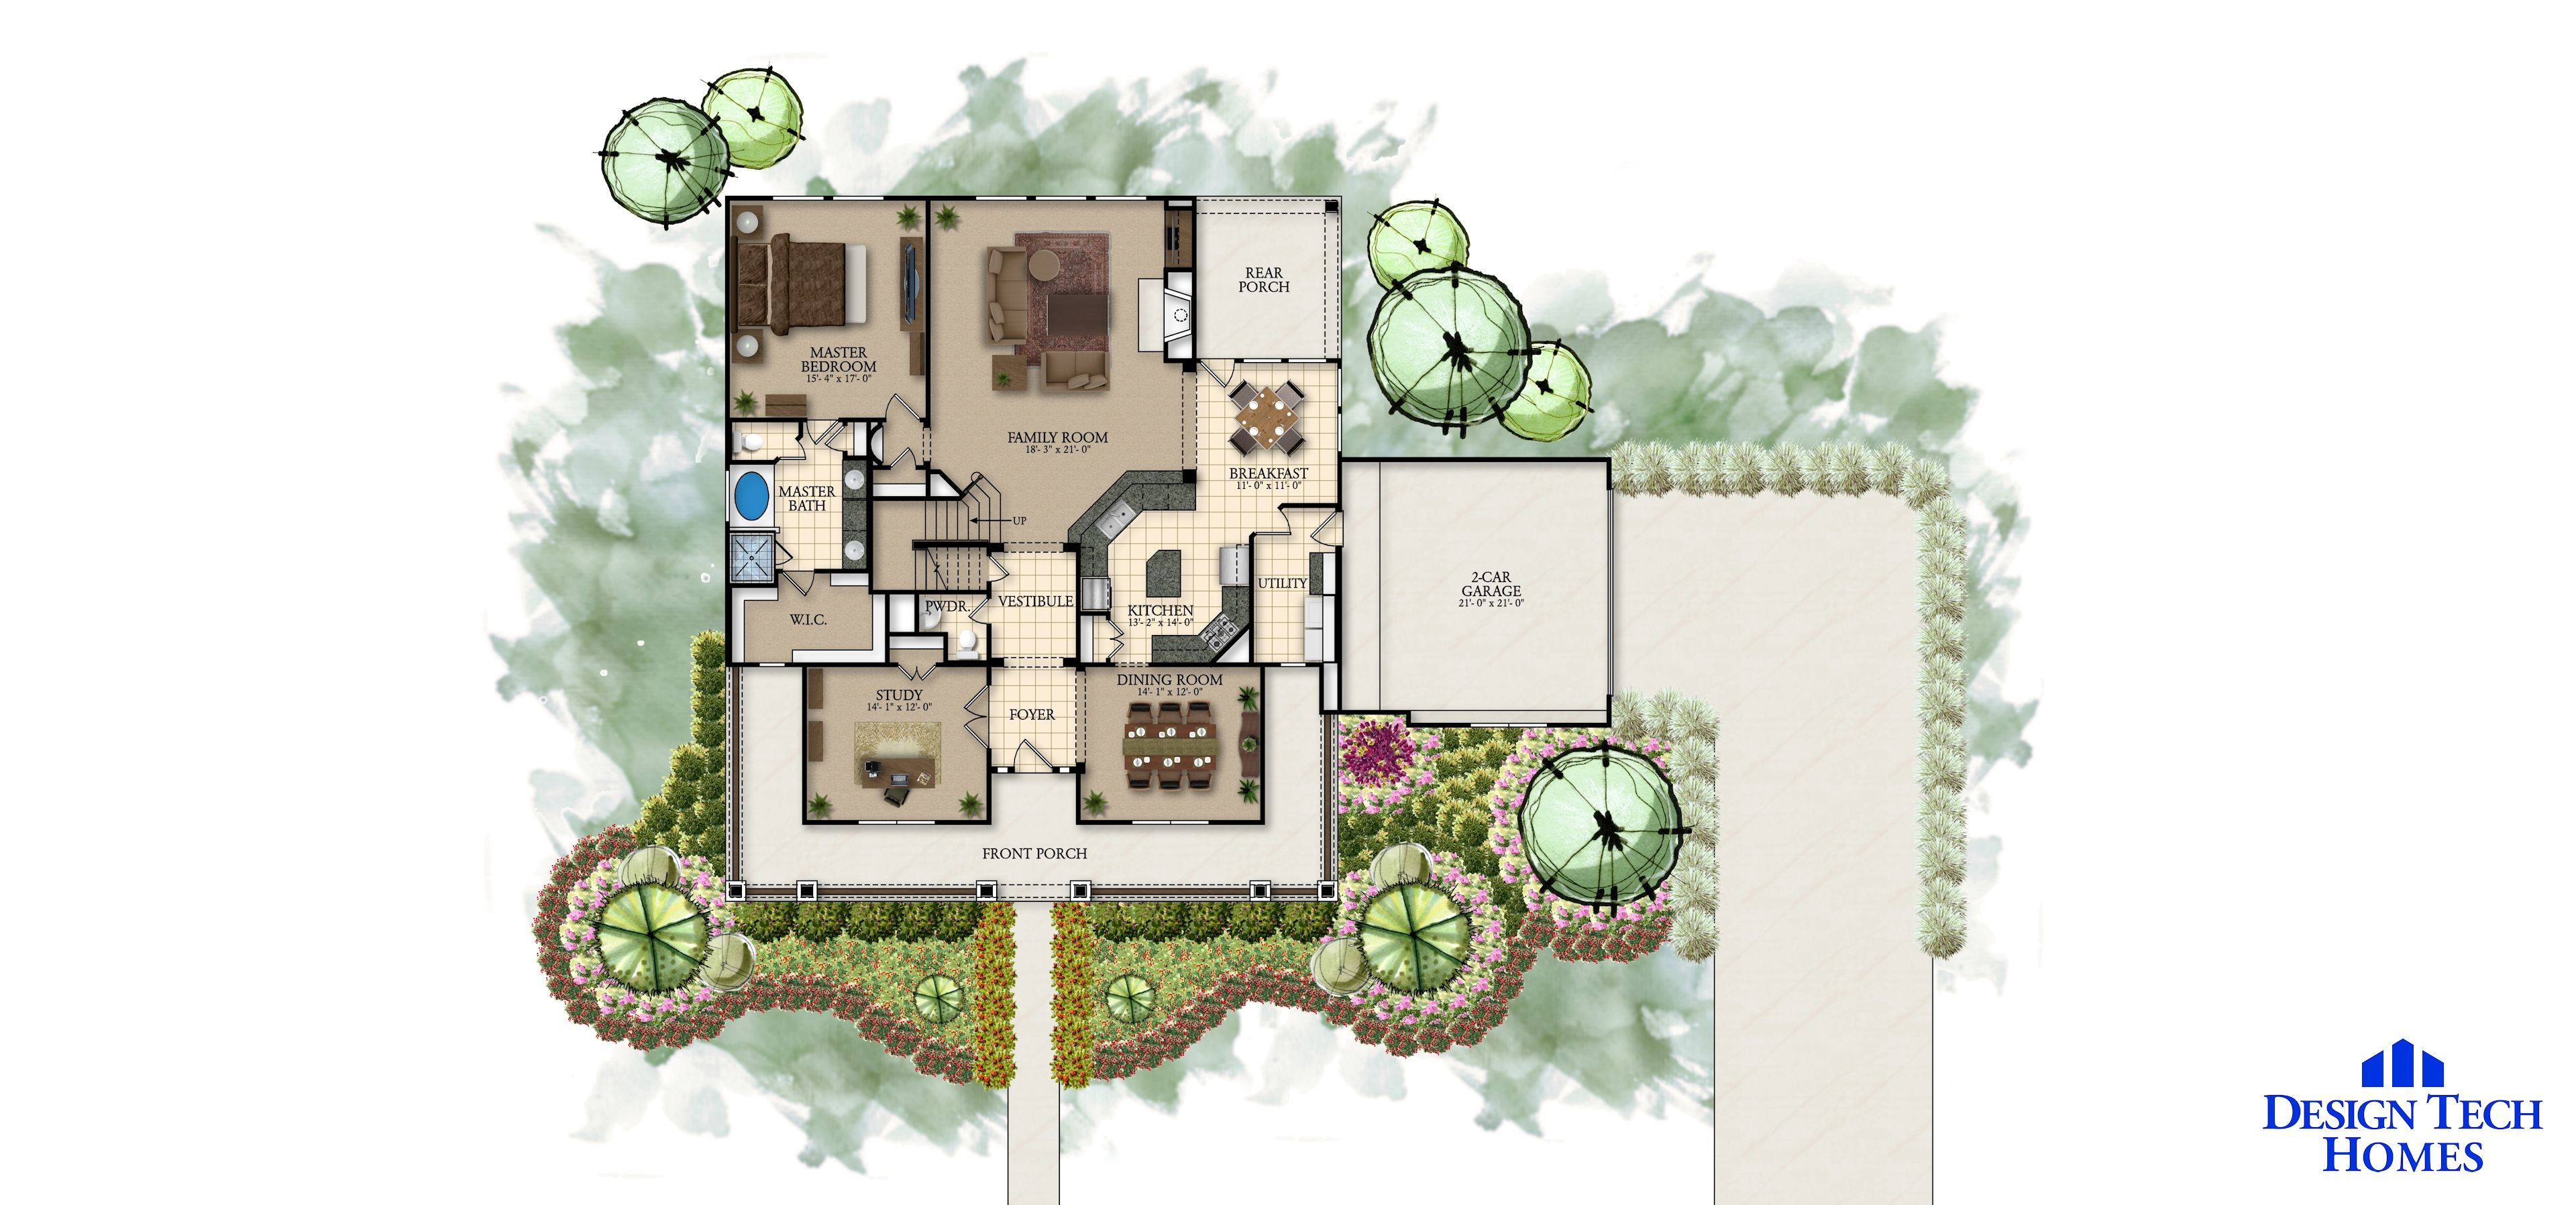 2,996 Sq Ft House Plan - 4 Bed 3.5 Bath, 2 Story - The Winslow ...